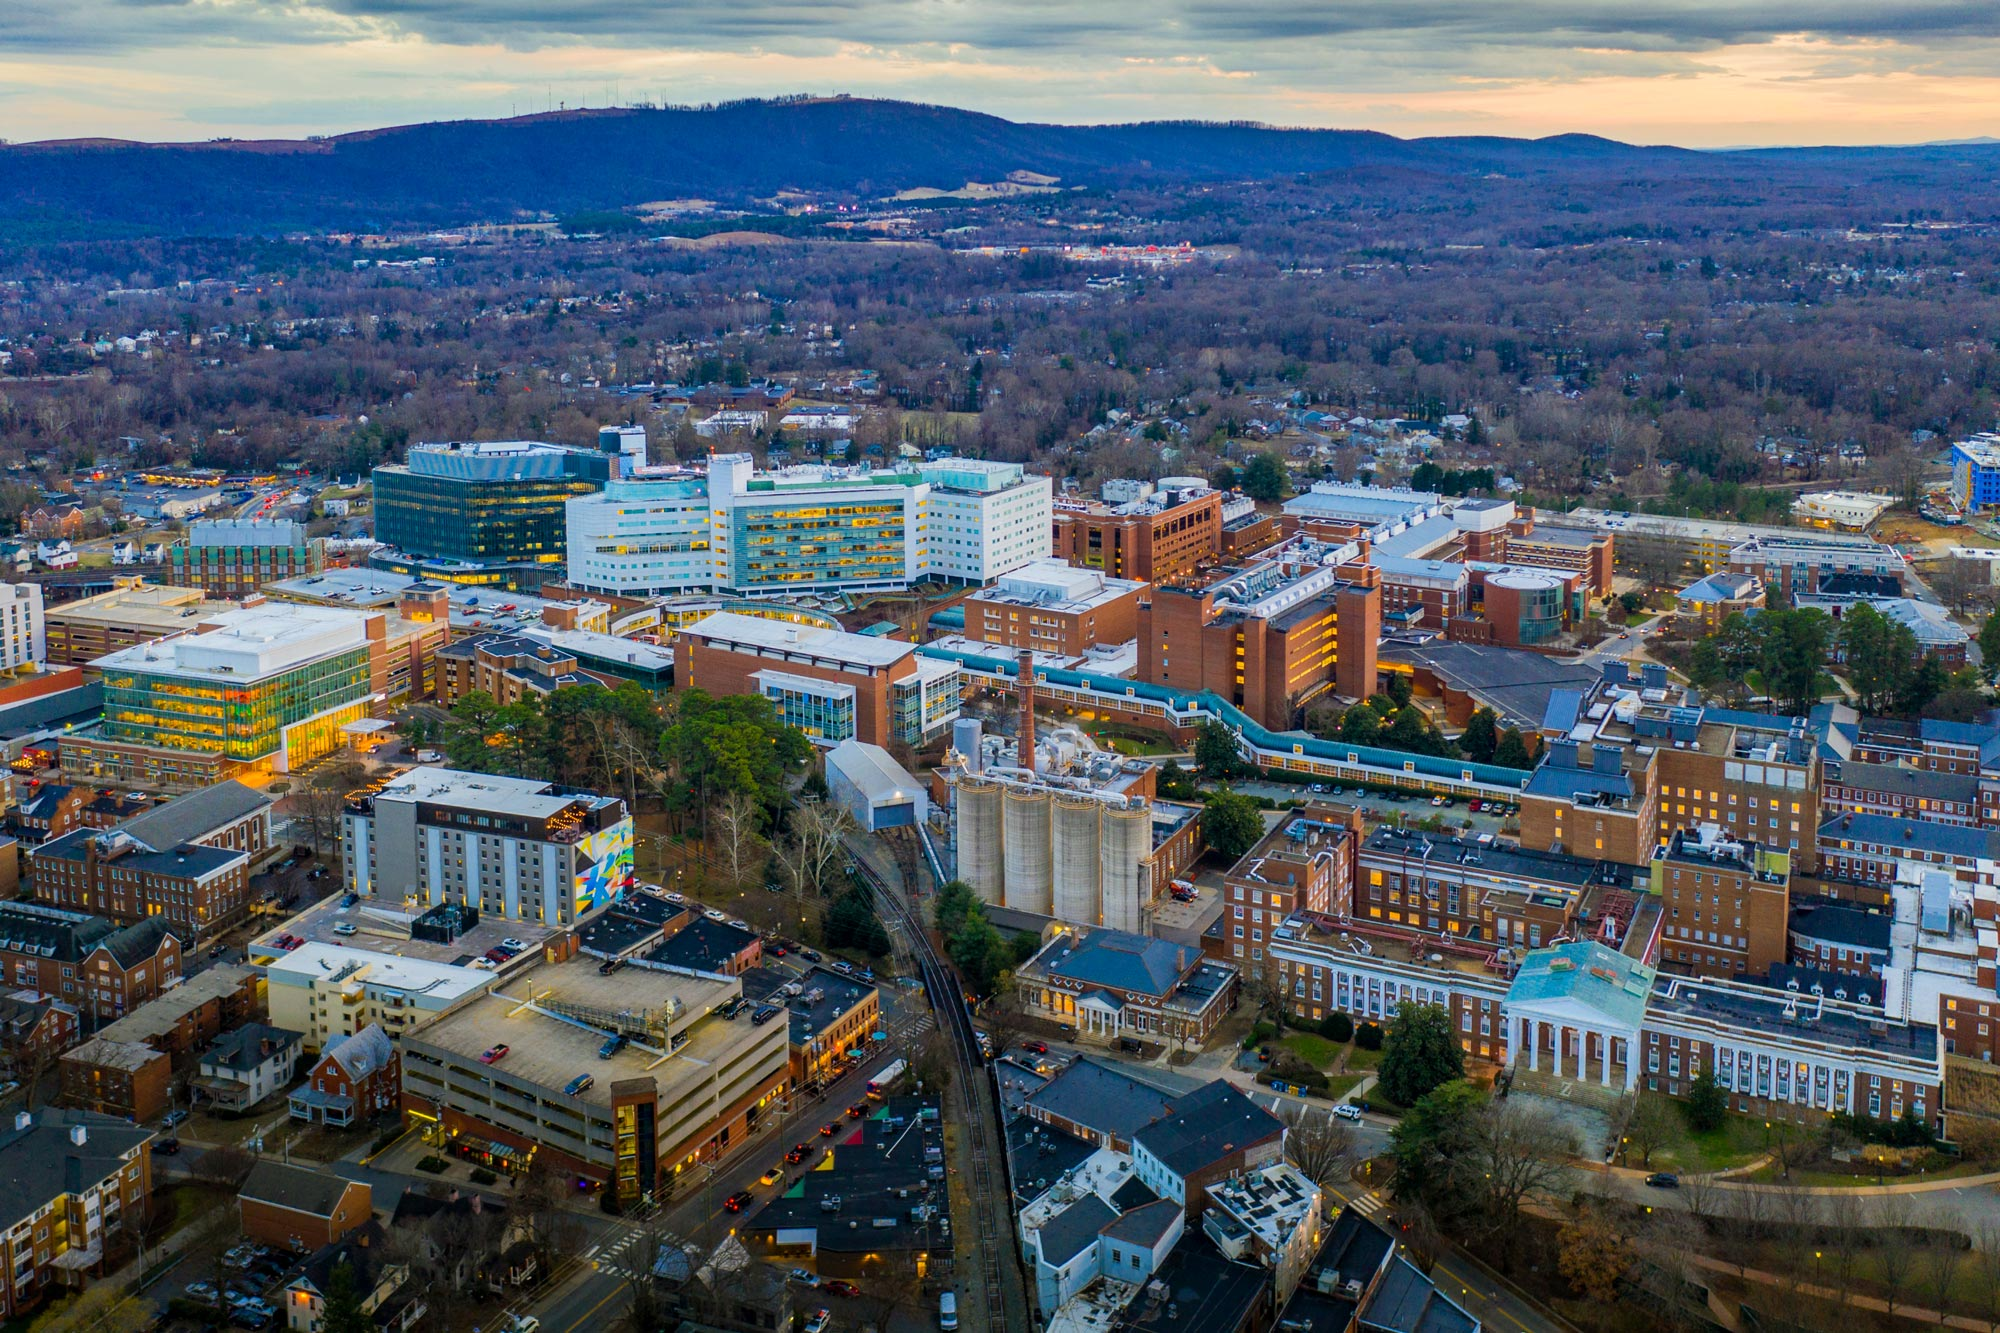 The UVA Medical Center was named a 2019 Leapfrog Top Hospital for its attention to safety and quality care.